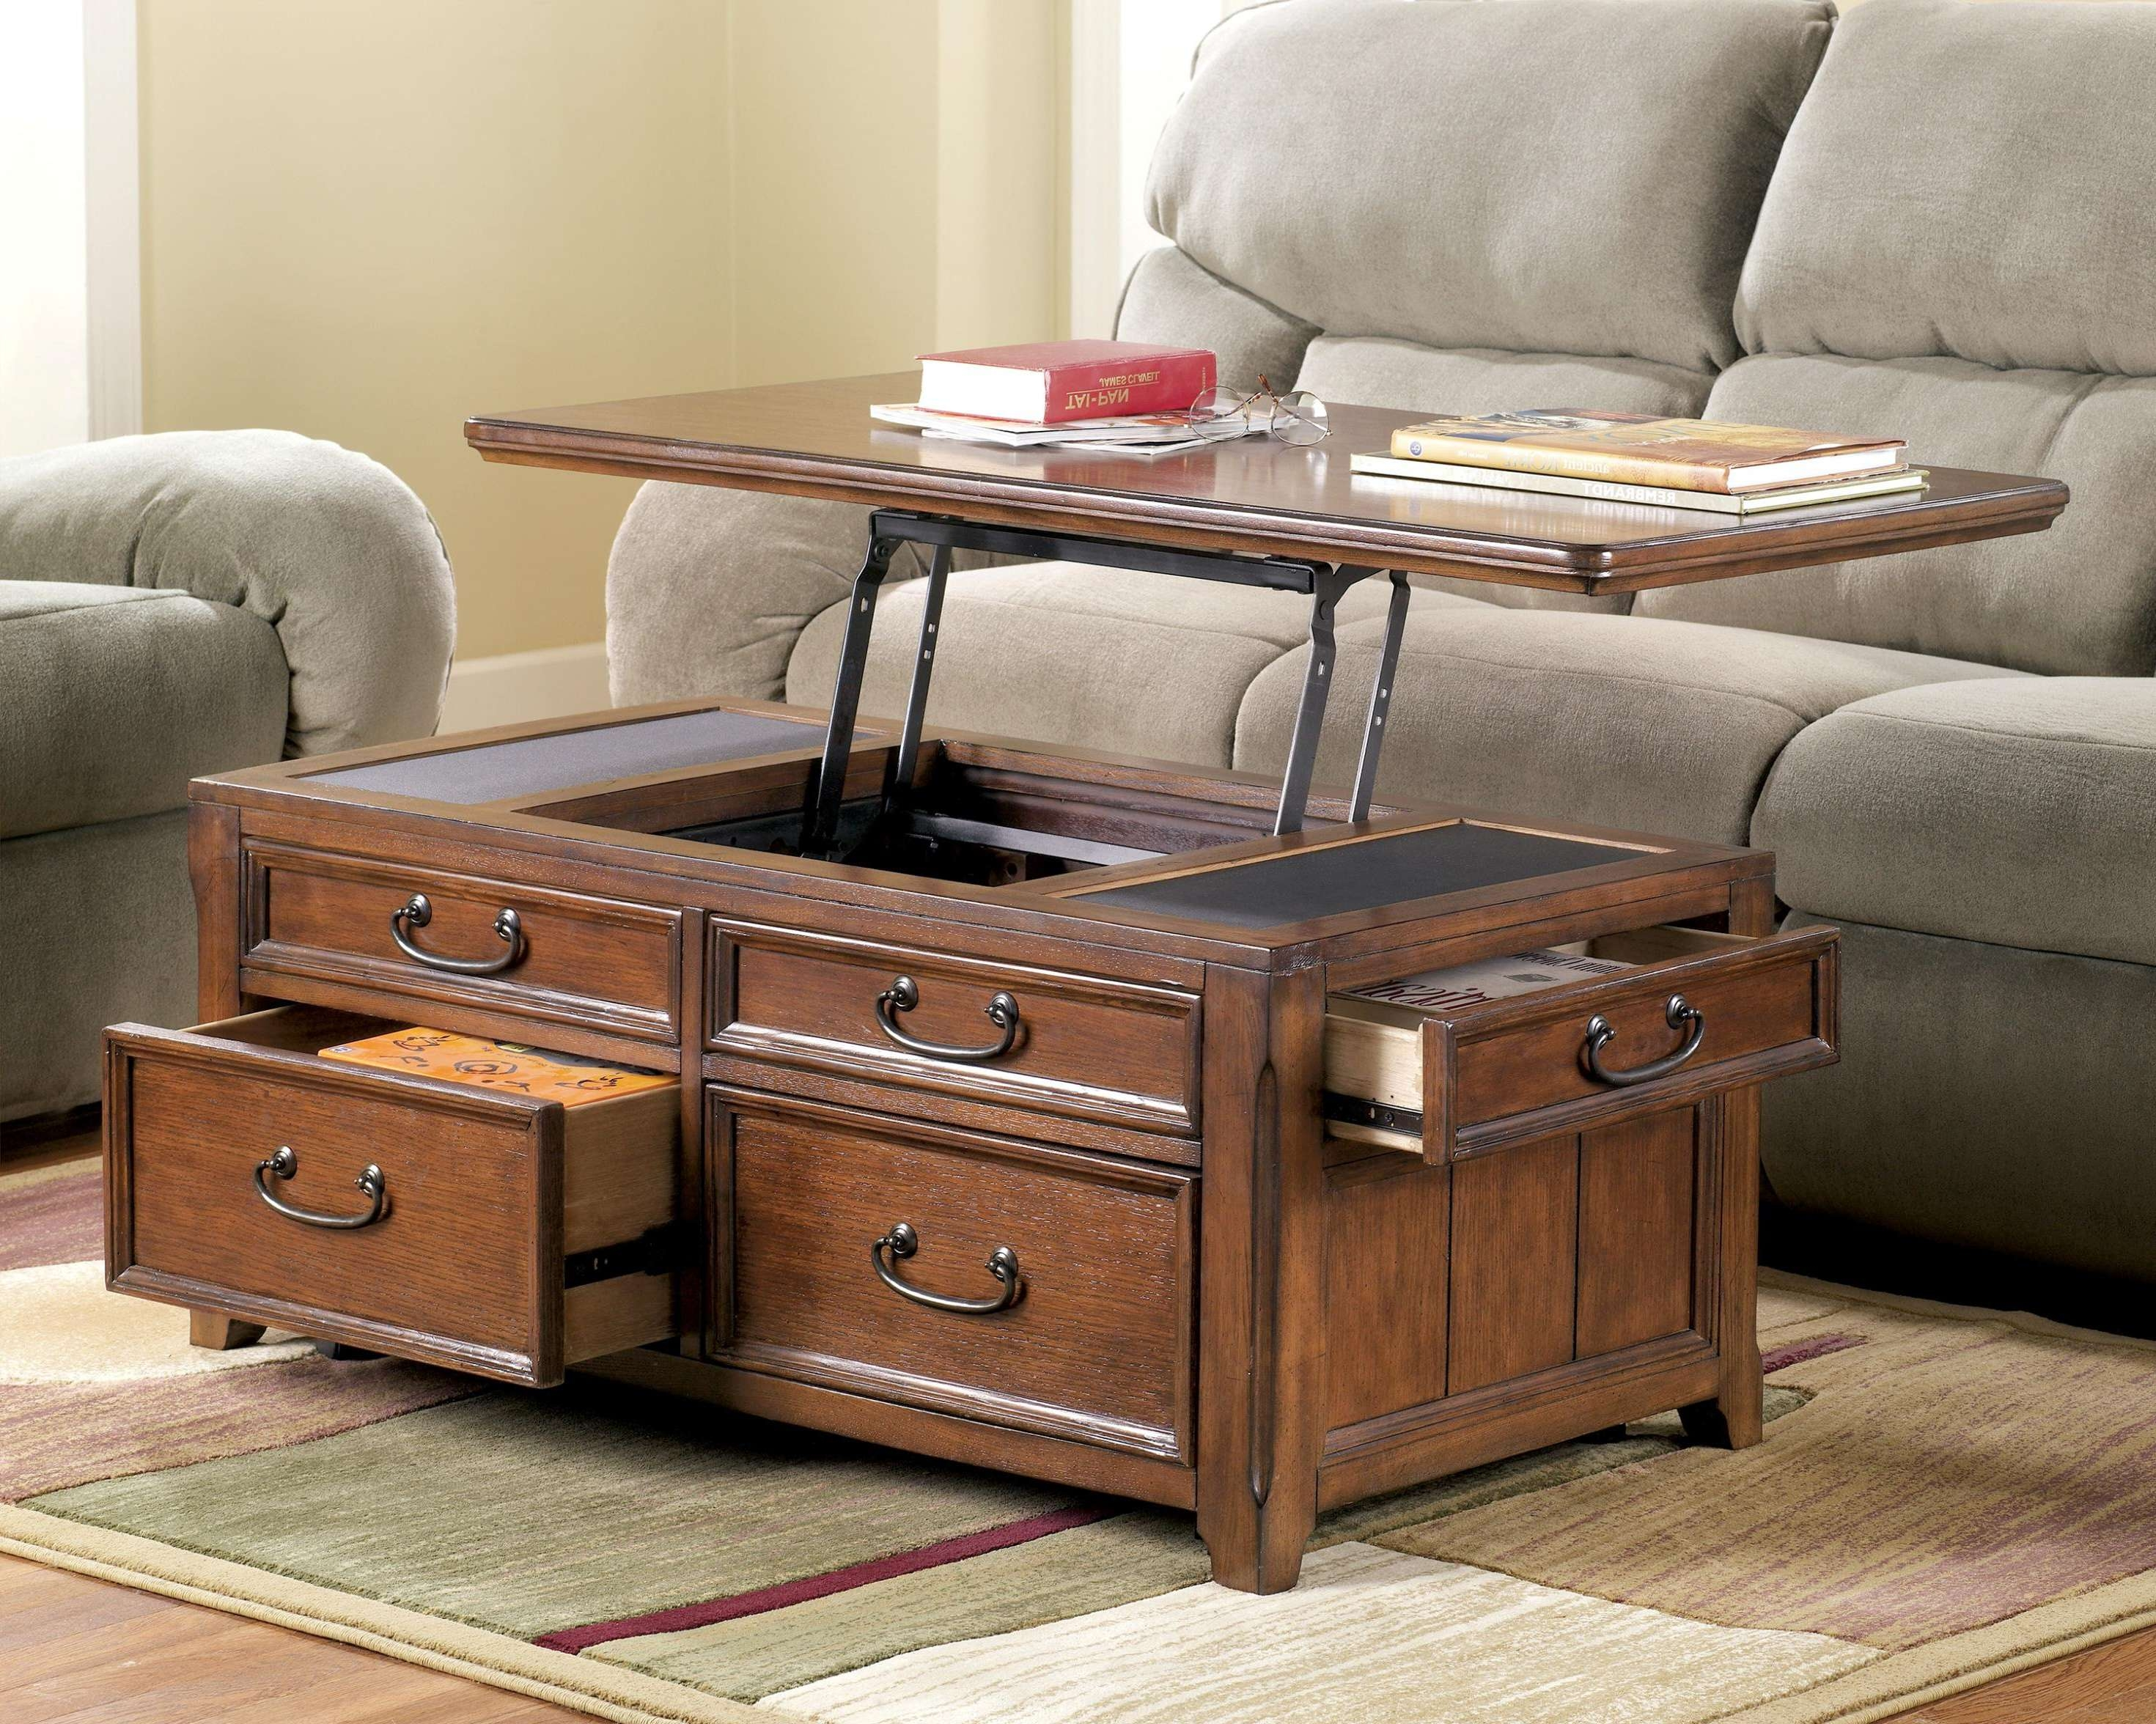 Coffee Tables : Large Trunk Coffee Tables Chest Table Remarkable Throughout Most Popular Trunk Coffee Tables (View 4 of 20)